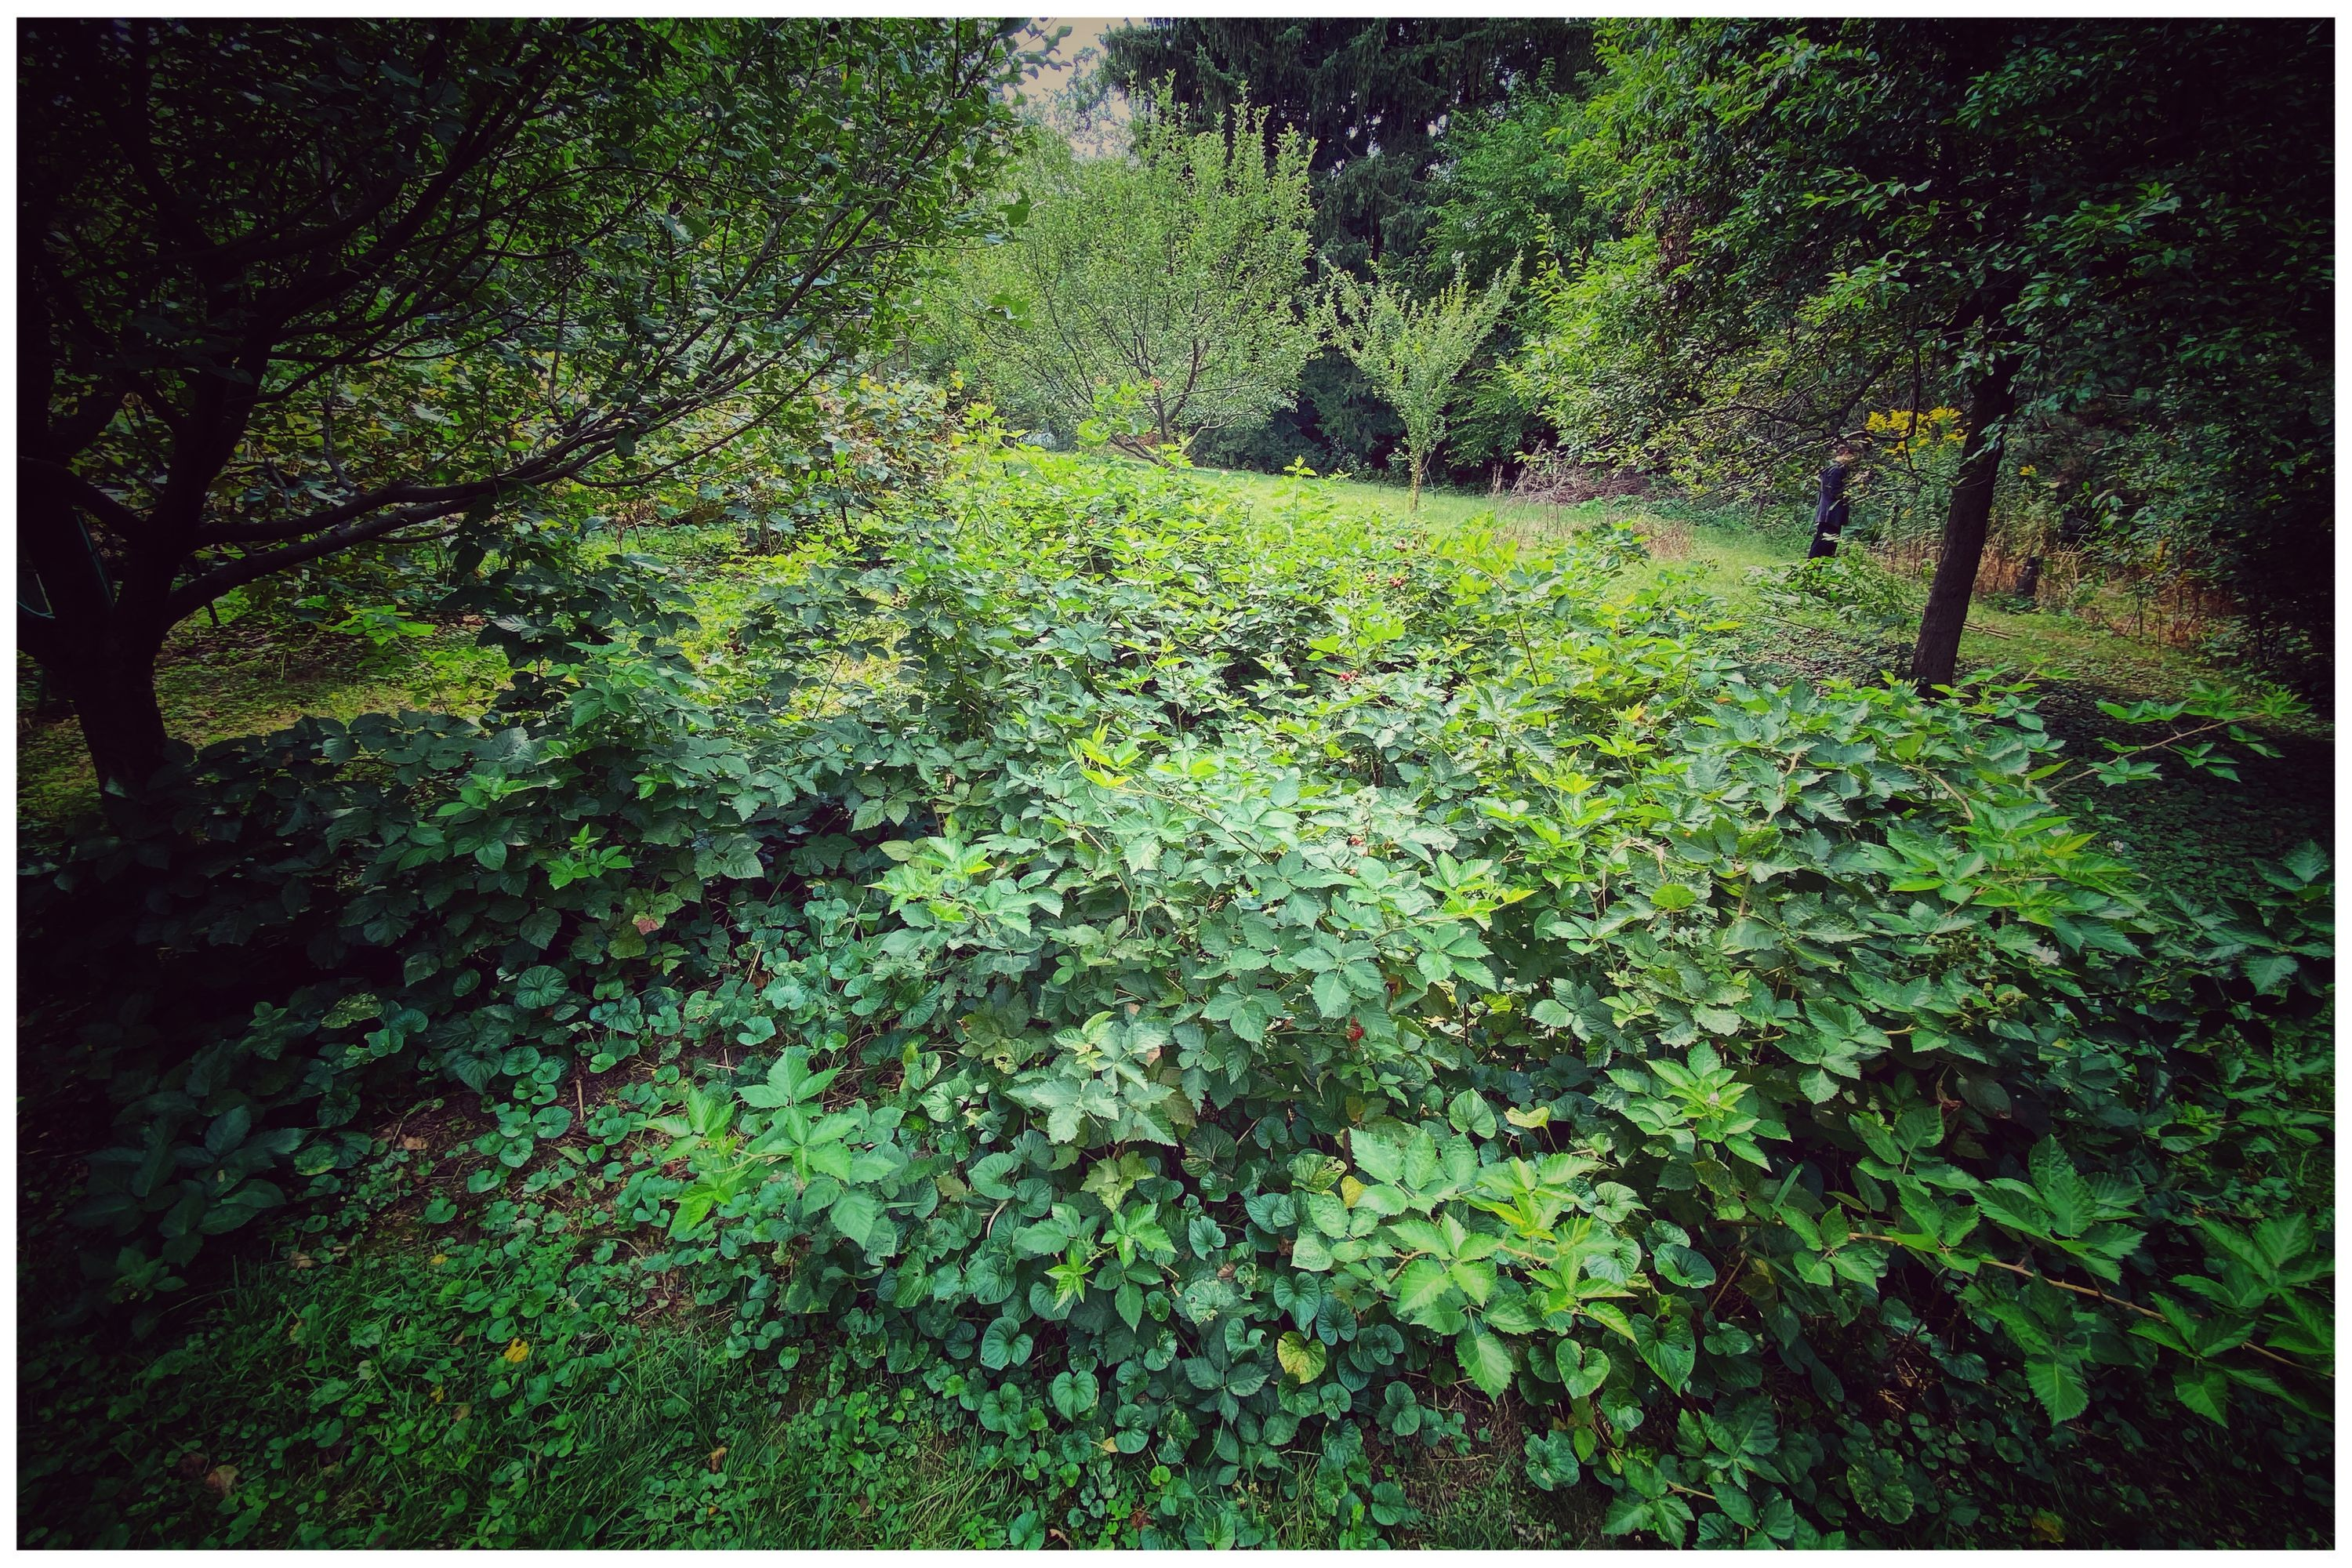 BlackBerry patch which has overrun its boundaries. 15 by 15 feet.